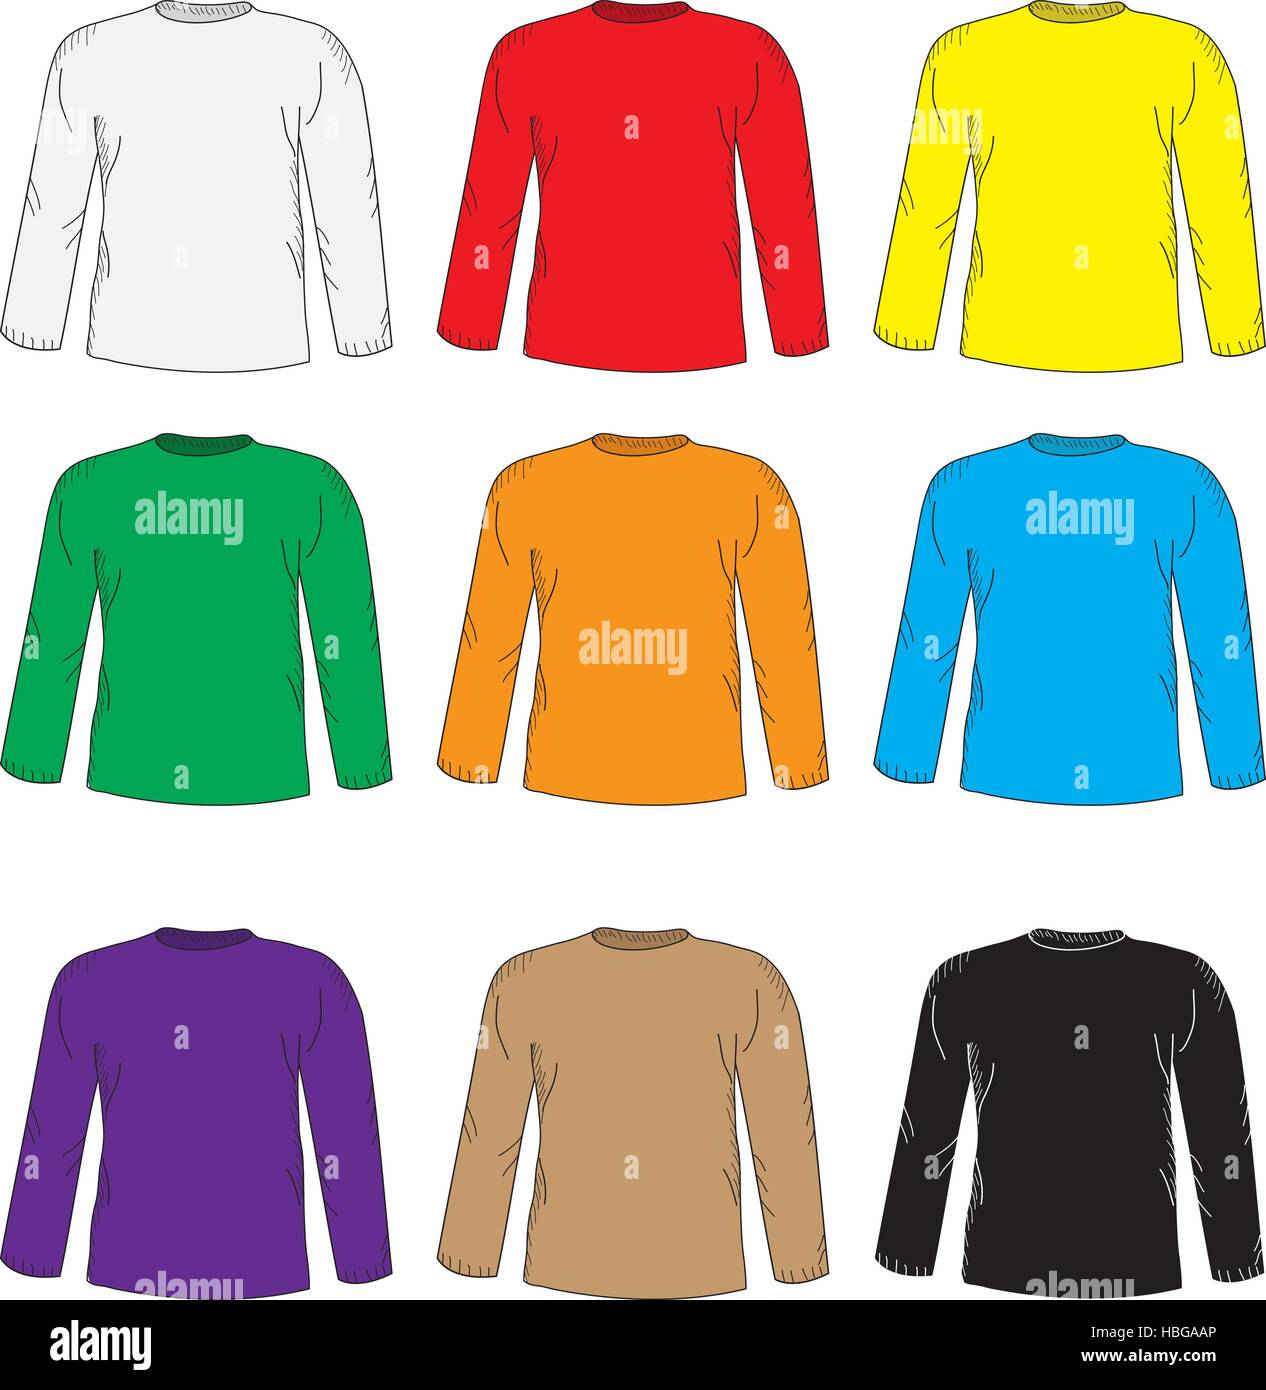 Mens T Shirts Design Template Set Multi Colored T Shirt With Long